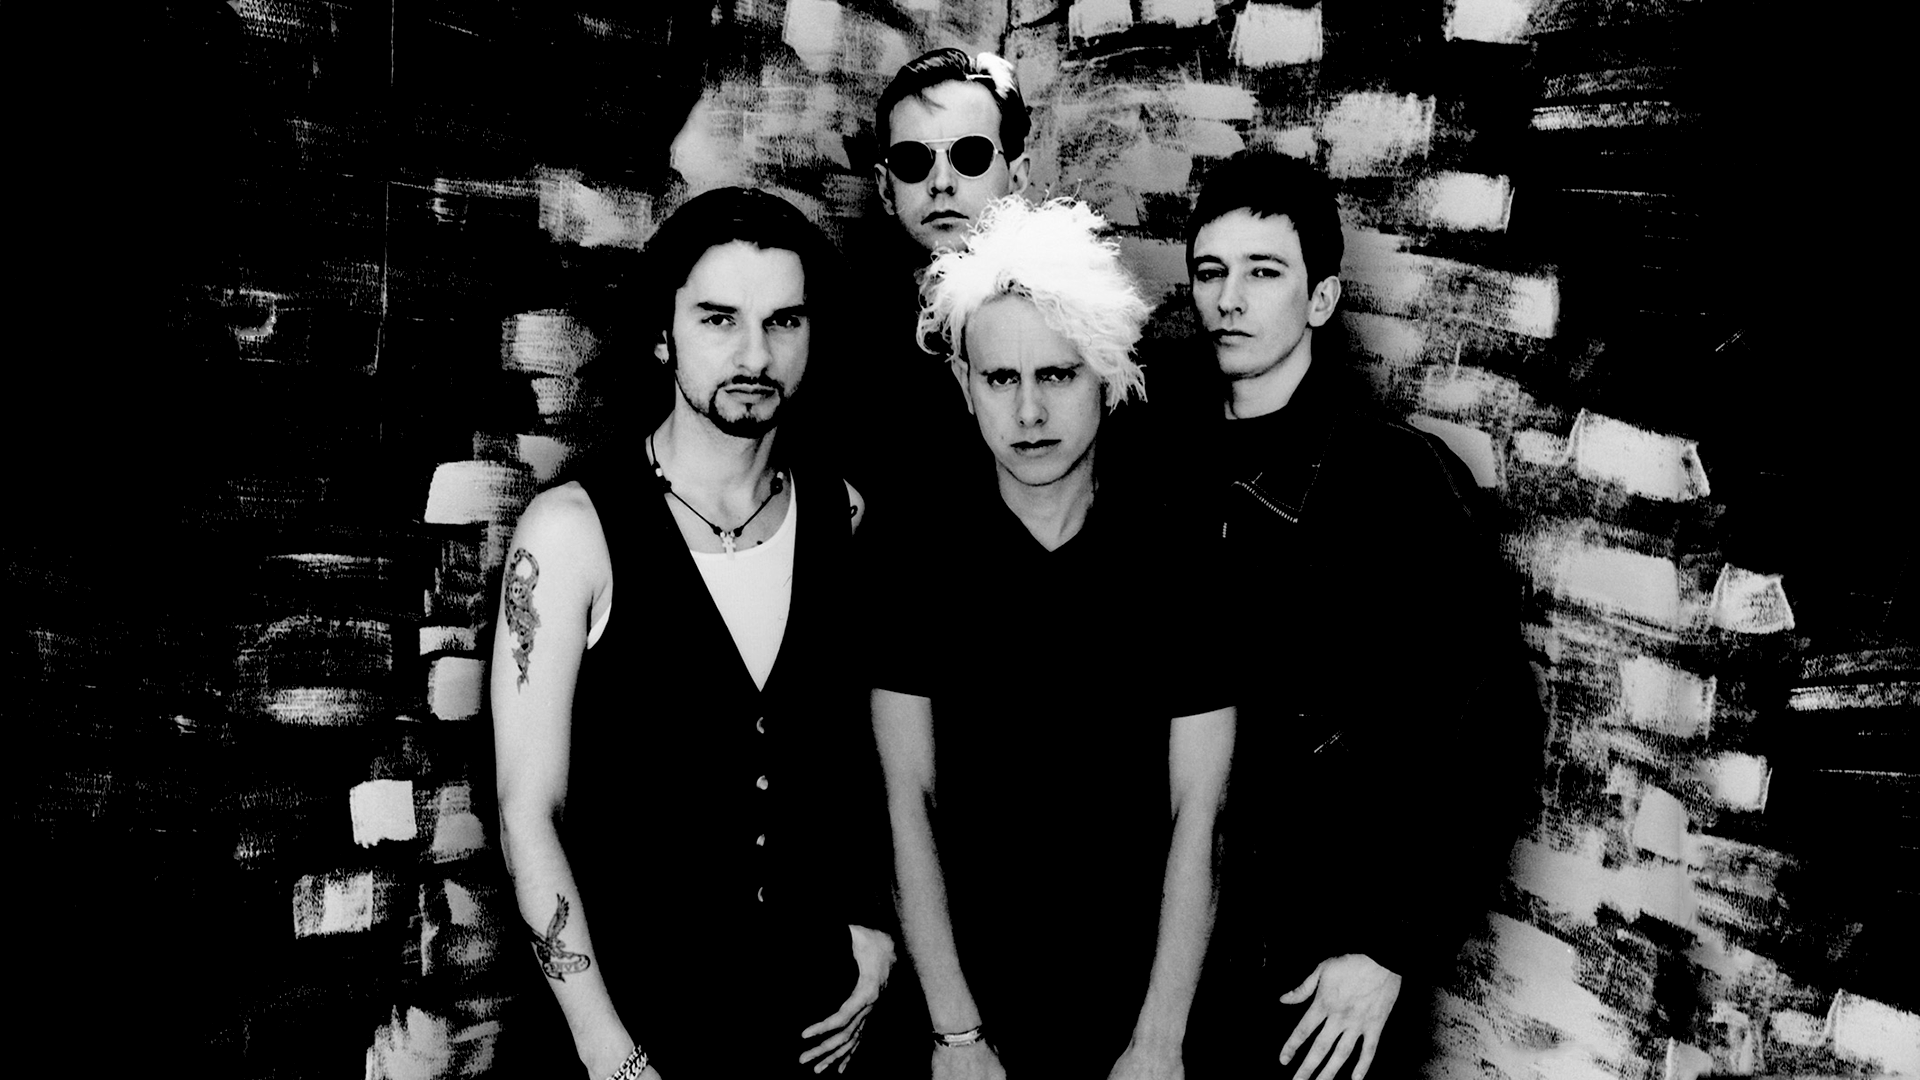 depeche_mode_1993_by_bastygoofy.png